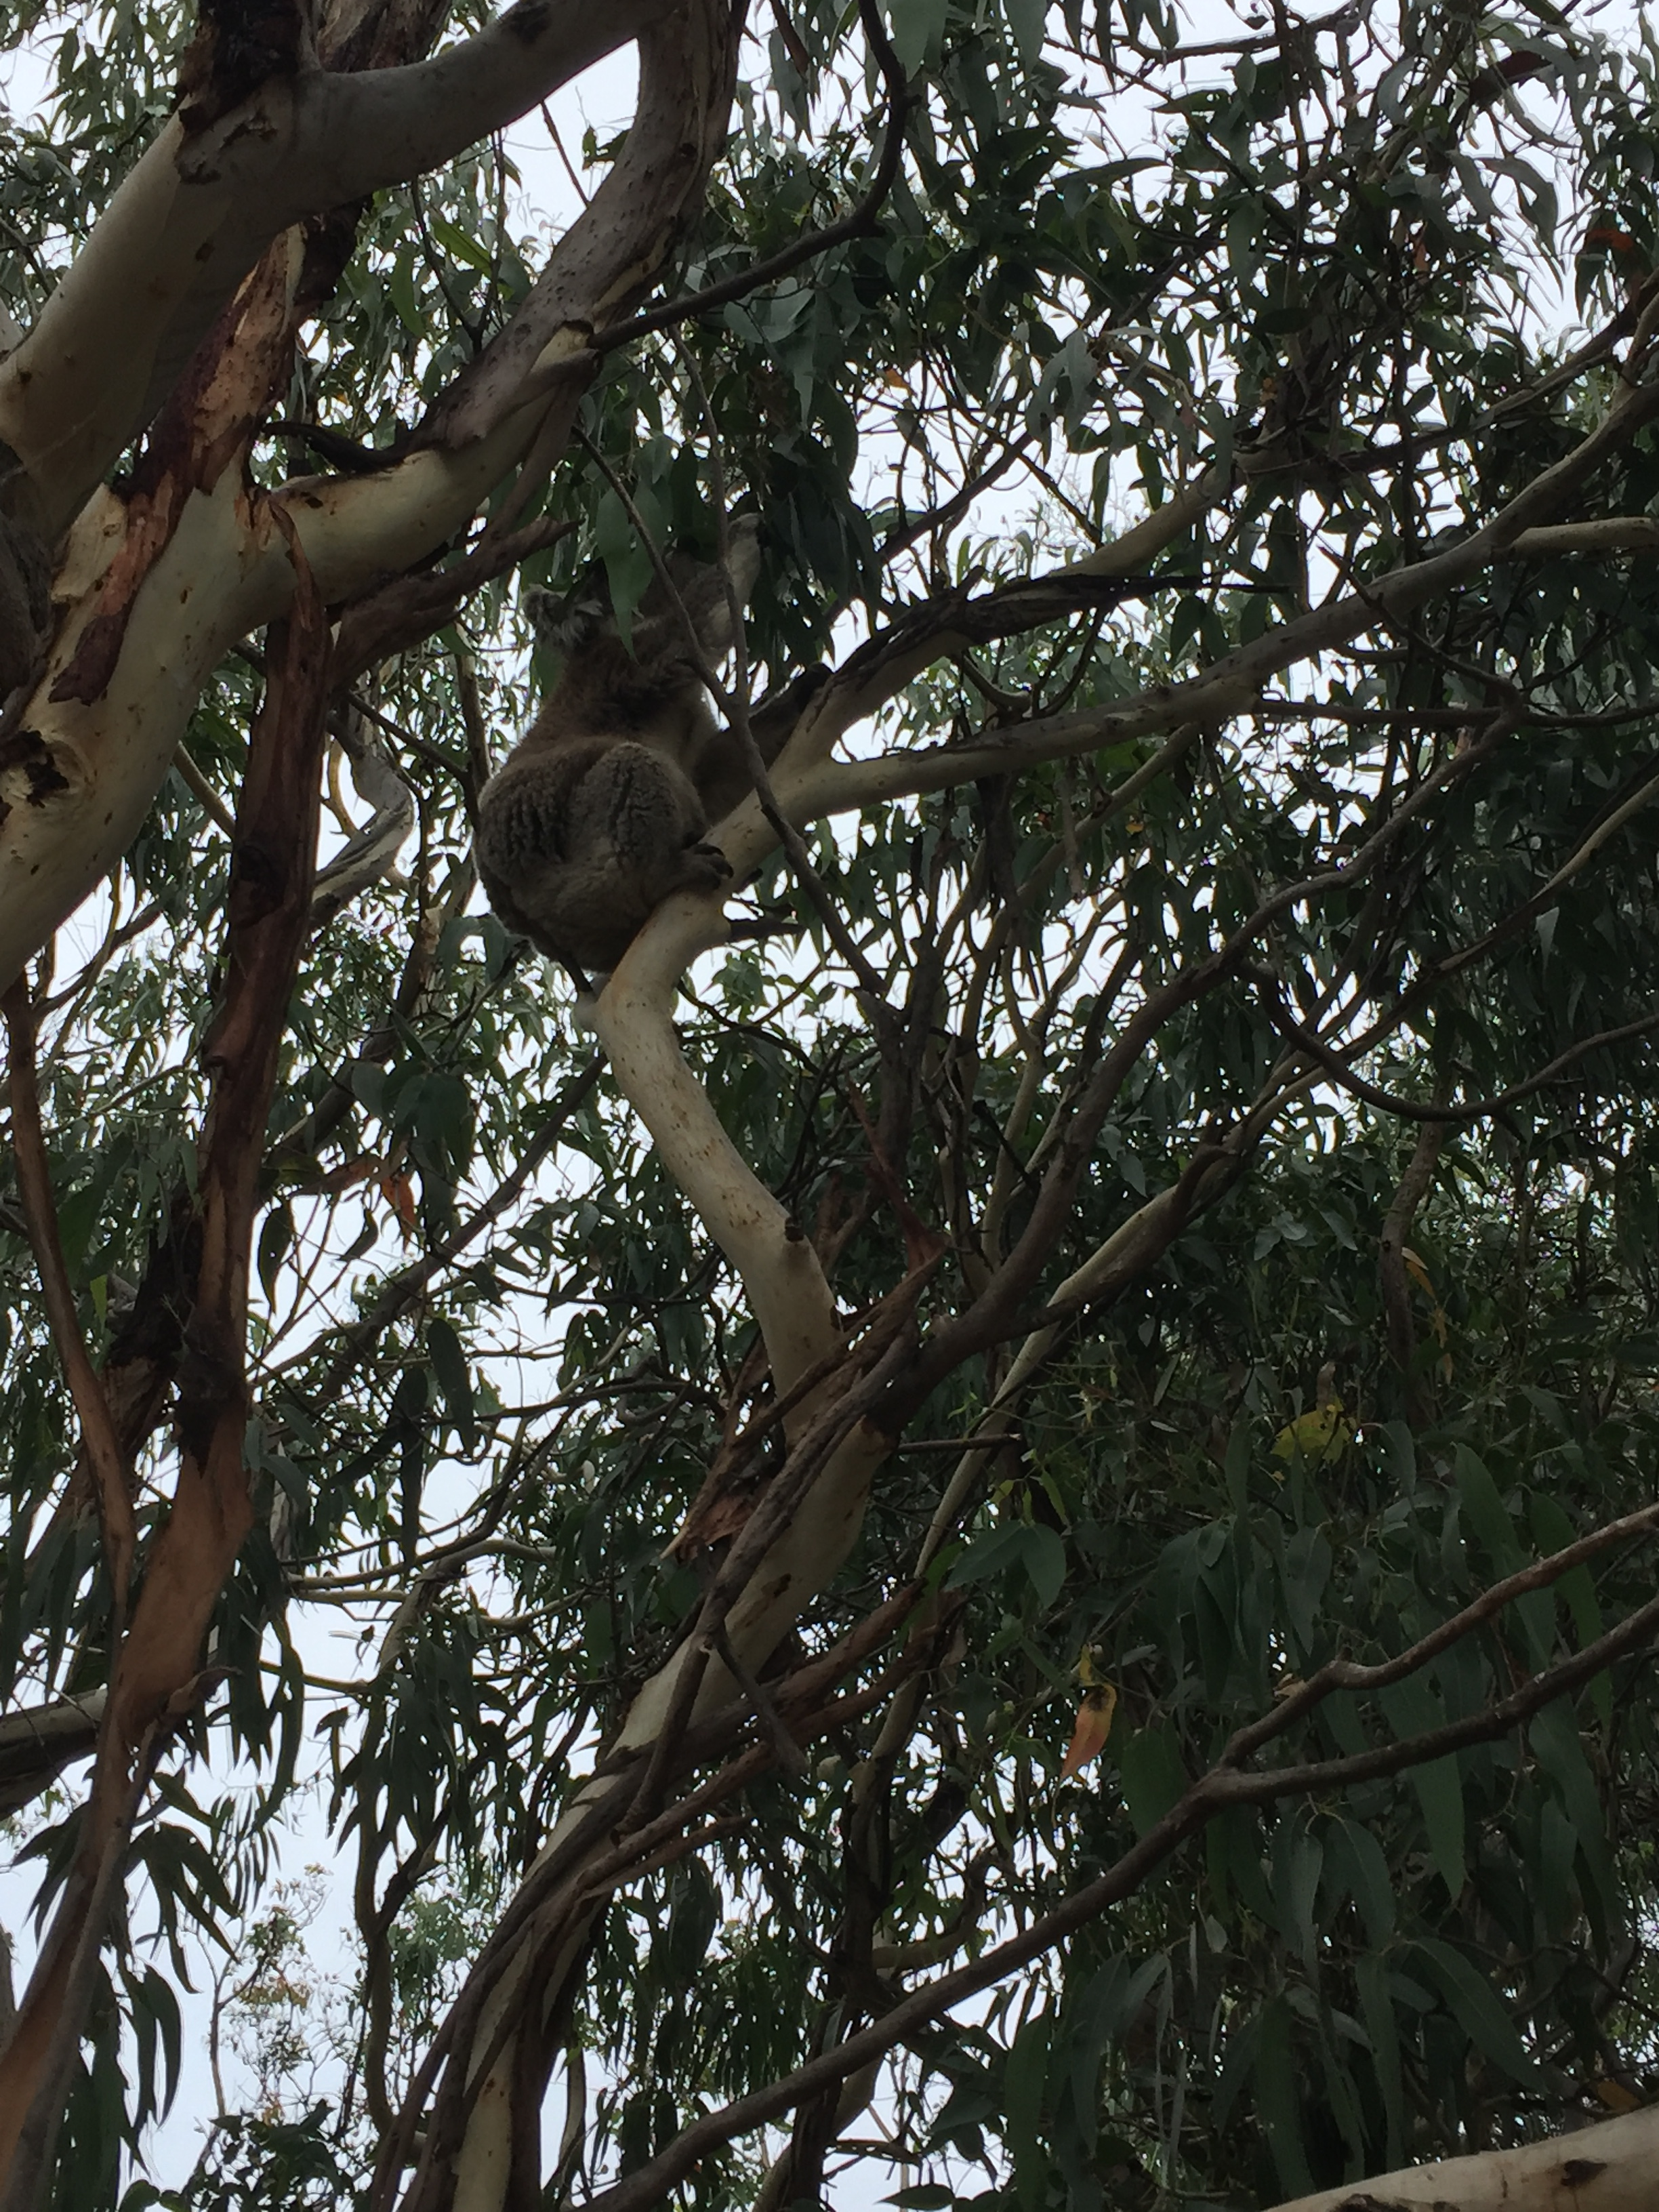 Koalas are actually fairly uninteresting and lazy animals.